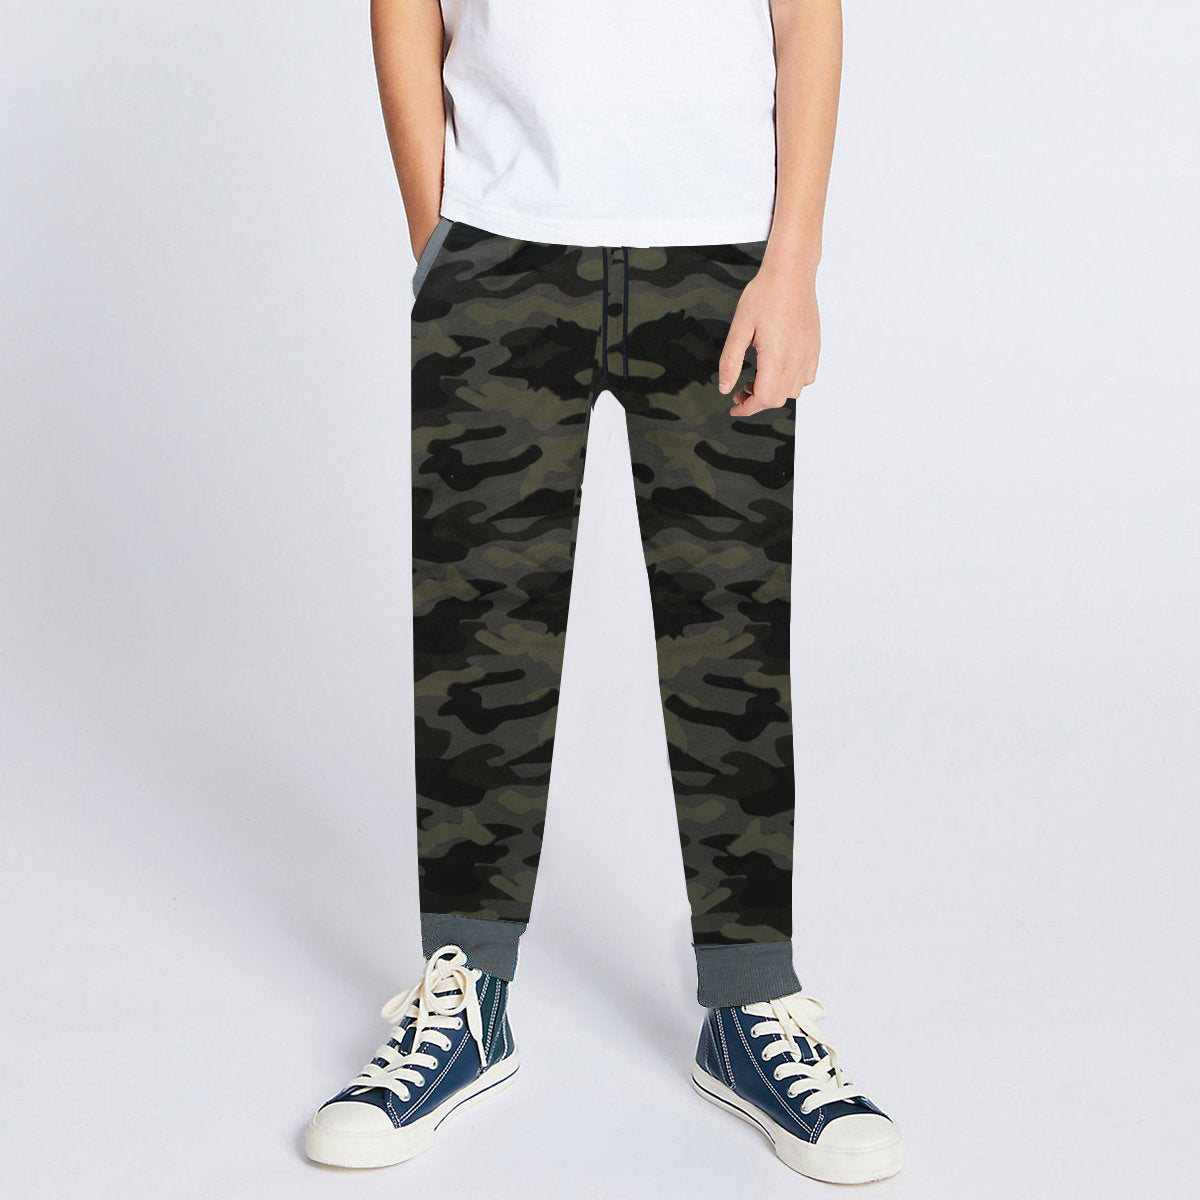 Next Slim Fit Jogger Trouser For Kids-Camouflage-SP3803